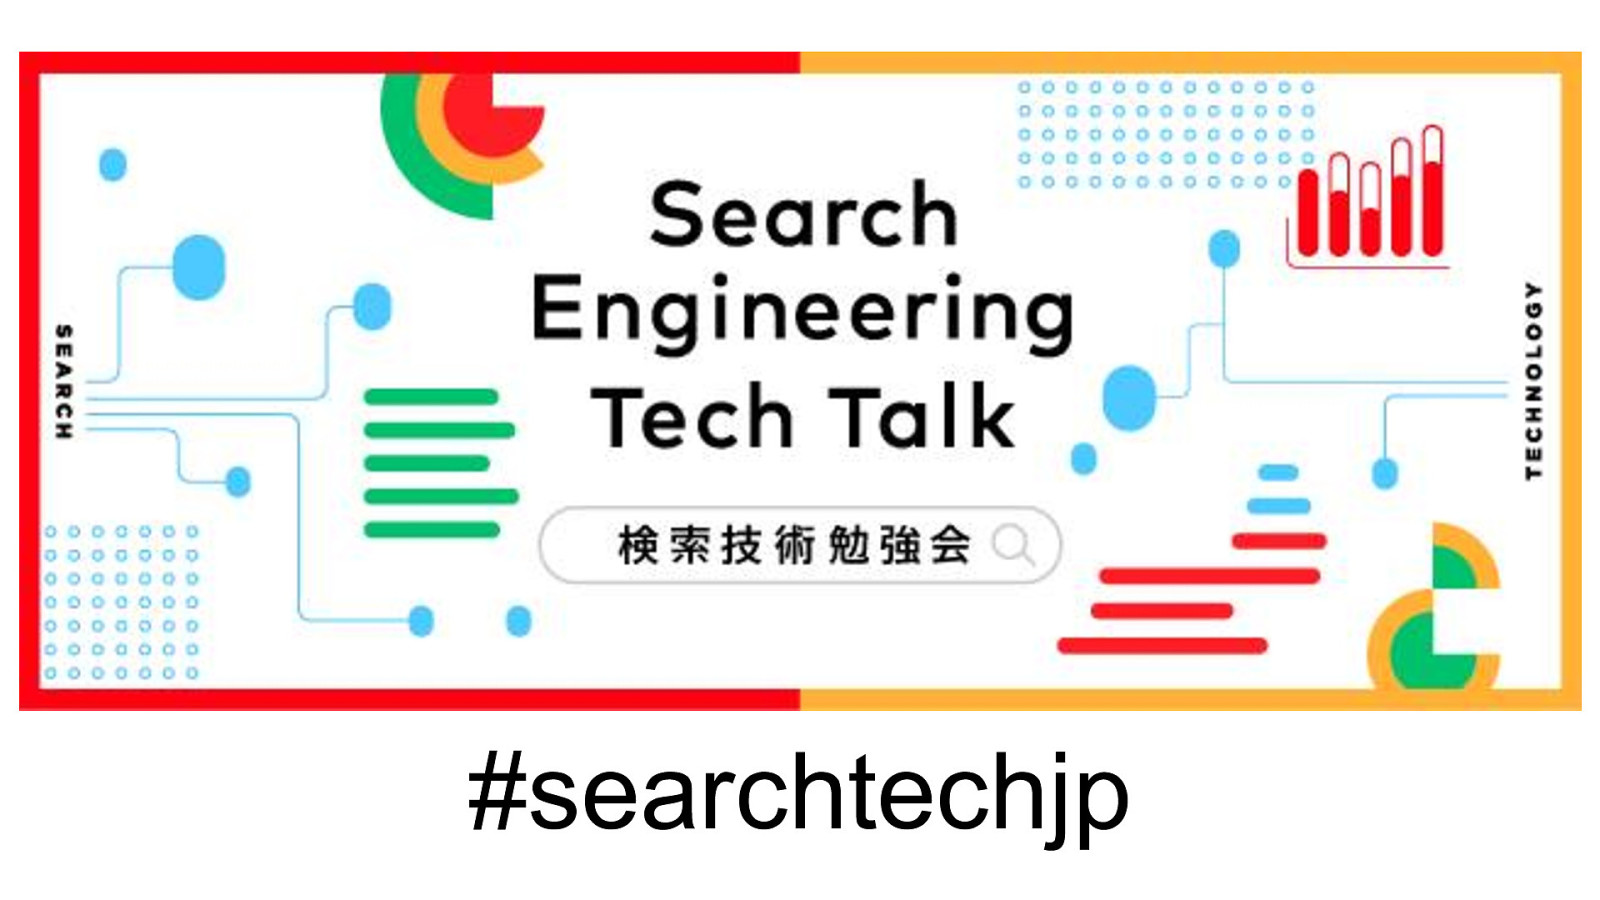 Search Engineering Tech Talk オープニング